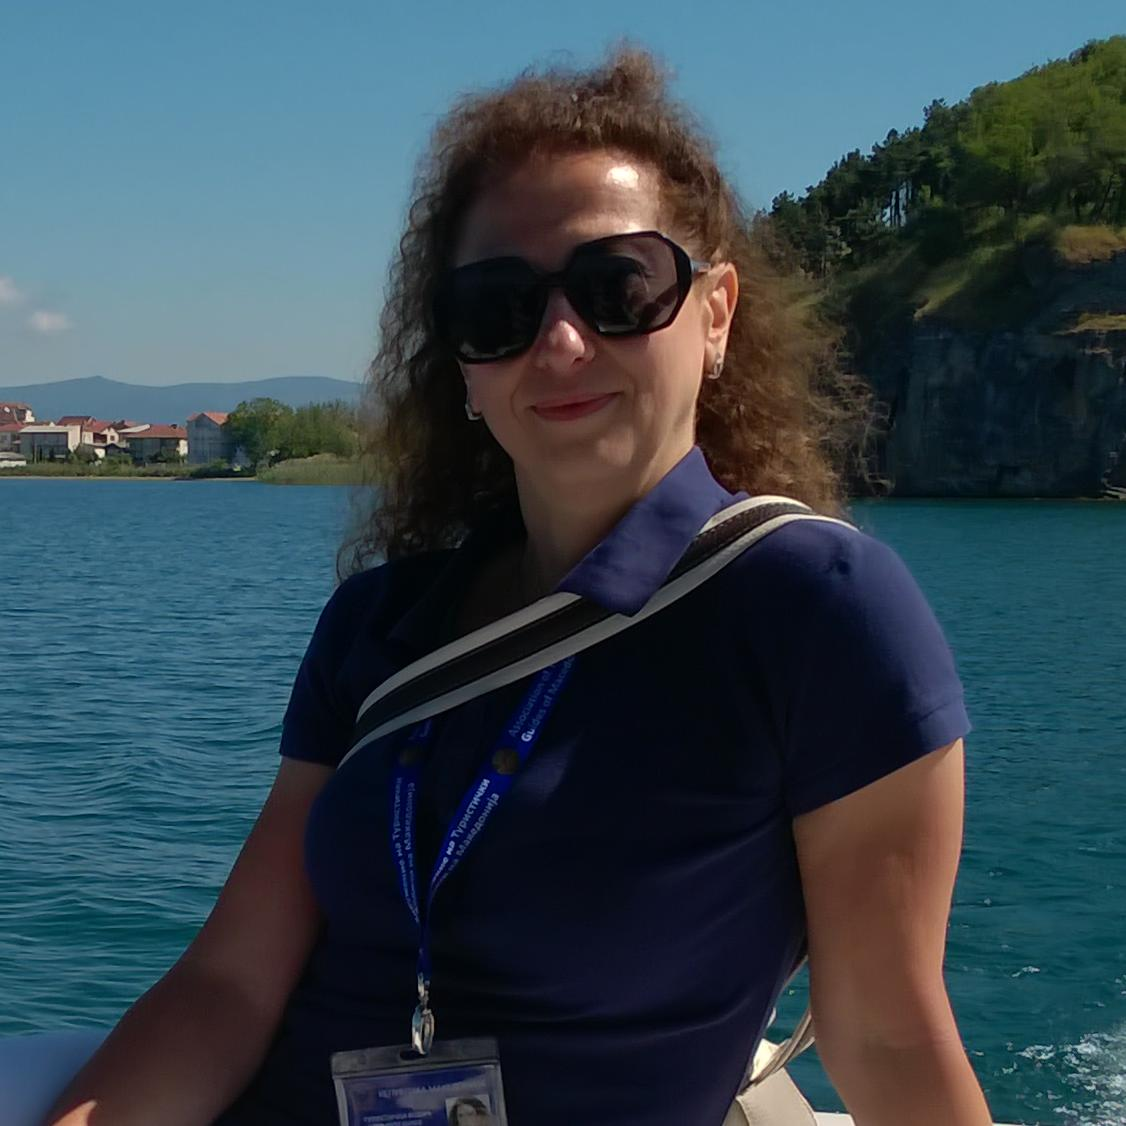 Liljana Danilova is a local tour guide for Skopje (Macedonia)